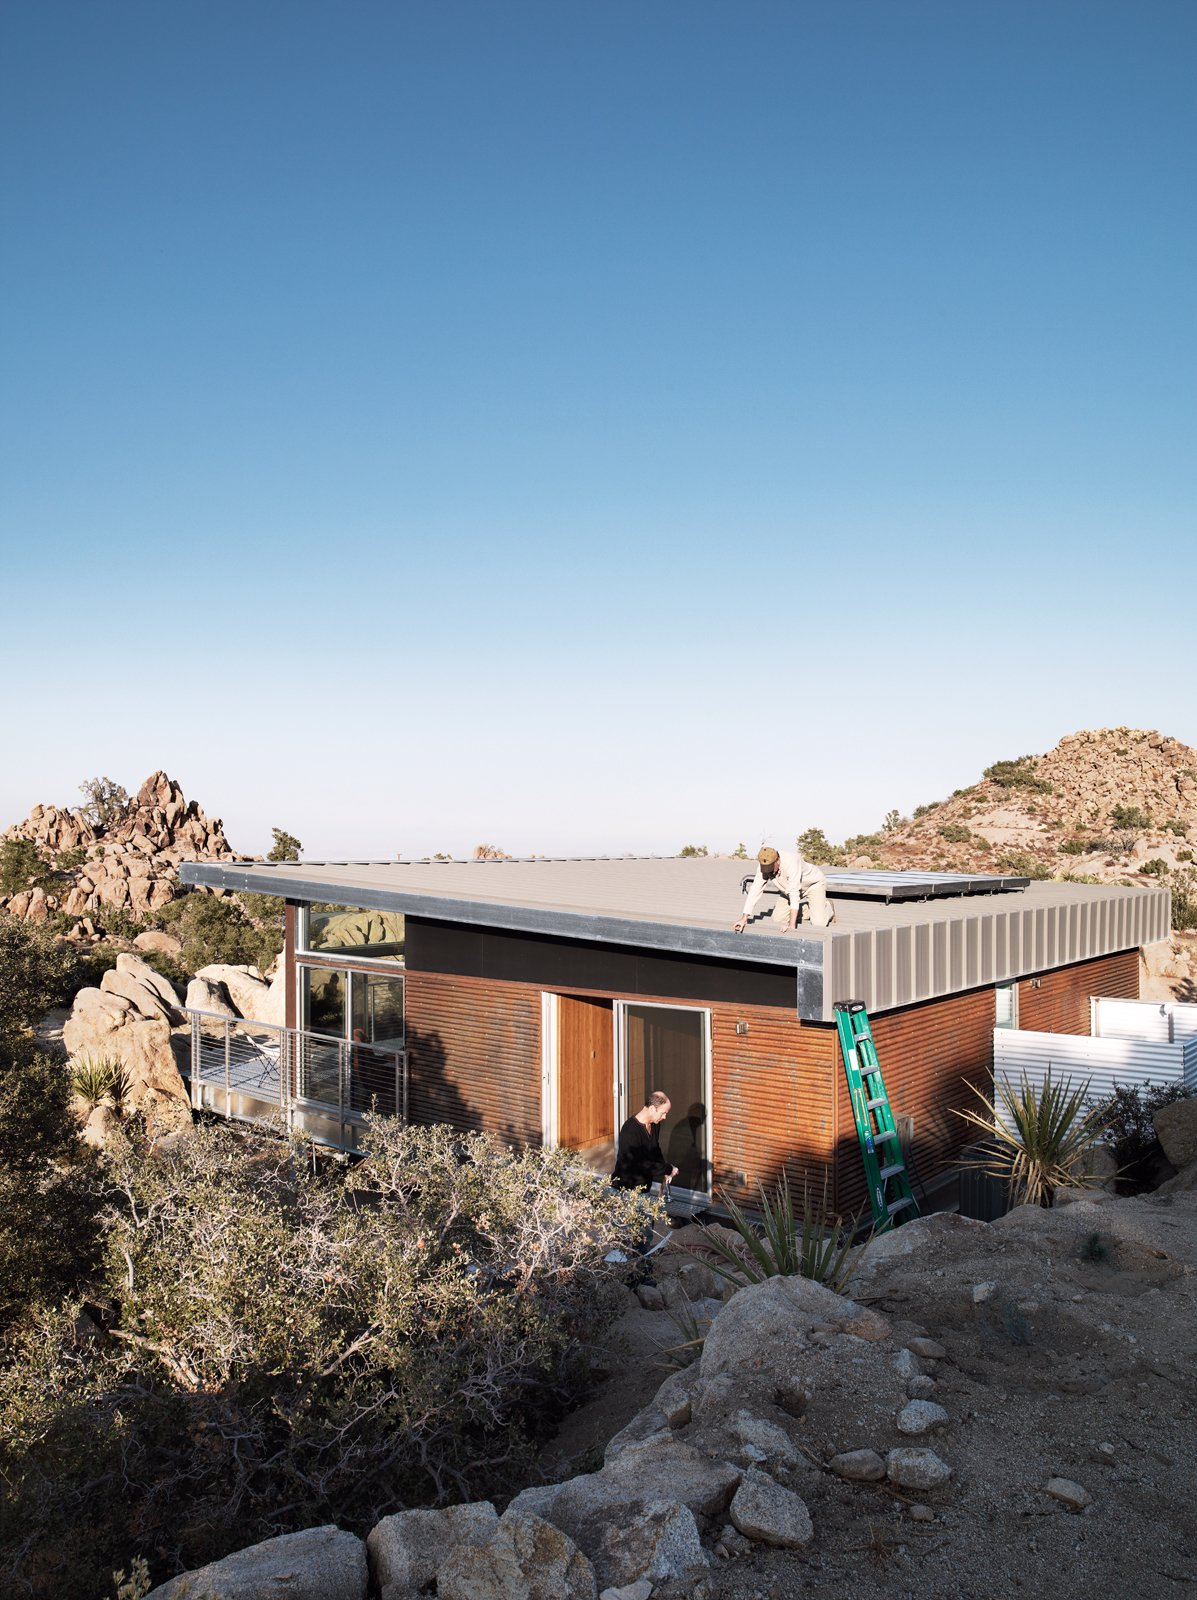 """As a paean to the old steel-mining shacks that inspired the home, McAdam sprayed the the corrugated-steel exterior with apple cider vinegar to create a warm rust effect. Small """"Hybrid Prefab"""" Home in the Desert - Photo 9 of 10"""